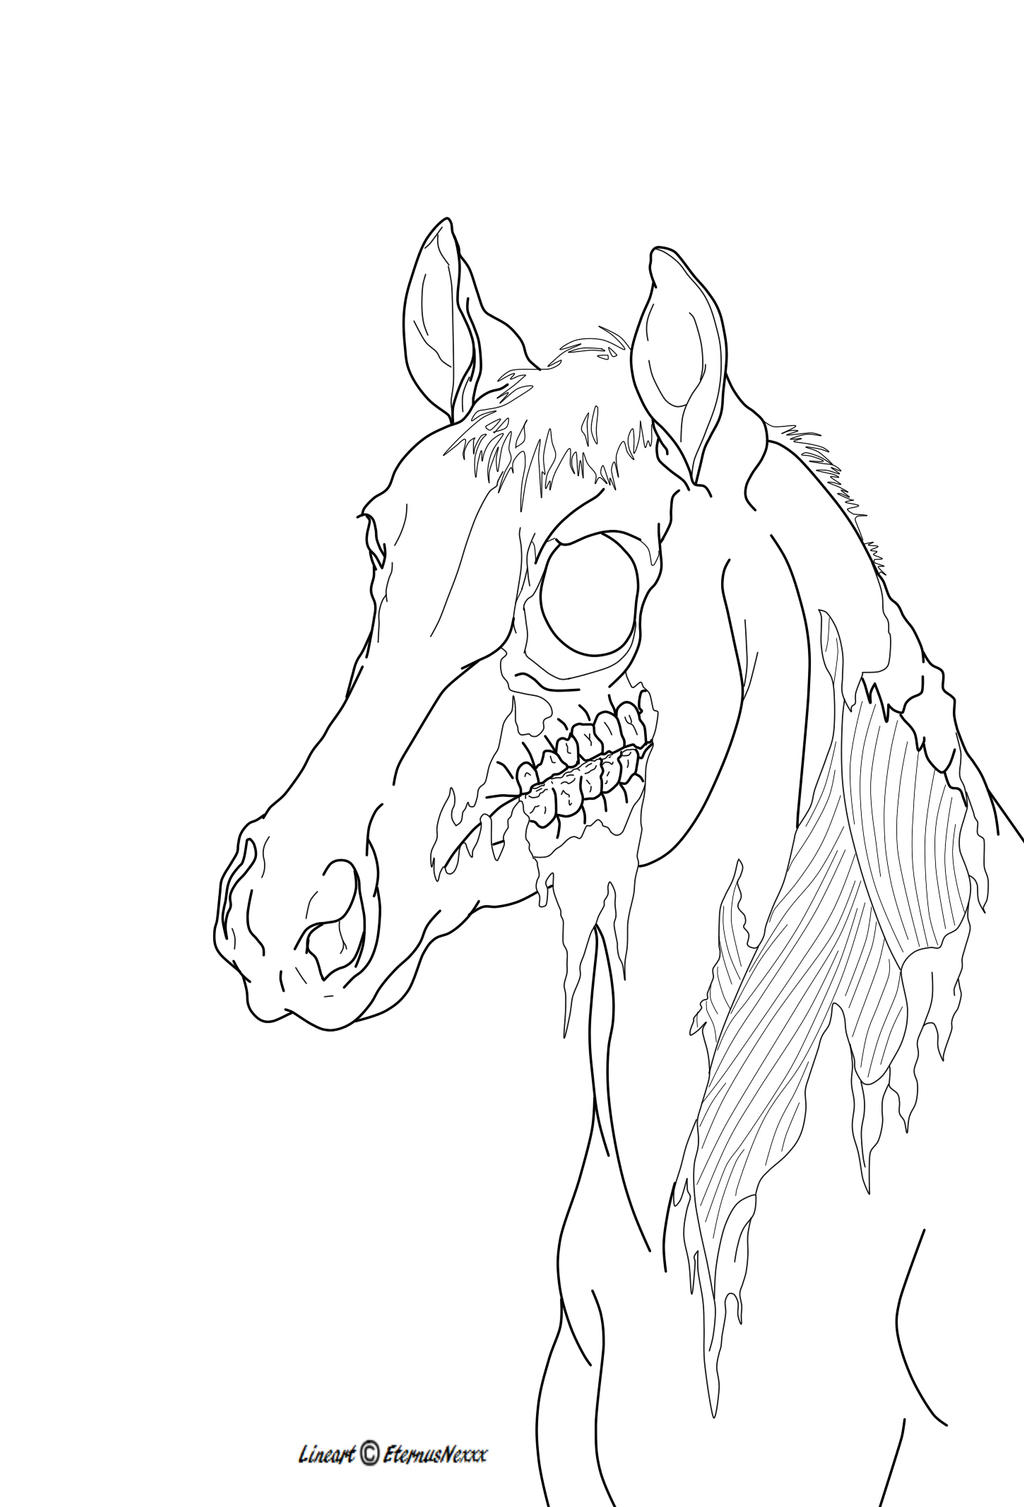 Line Drawing Of A Zombie : Zombie horse lineart by eternusnexxx on deviantart